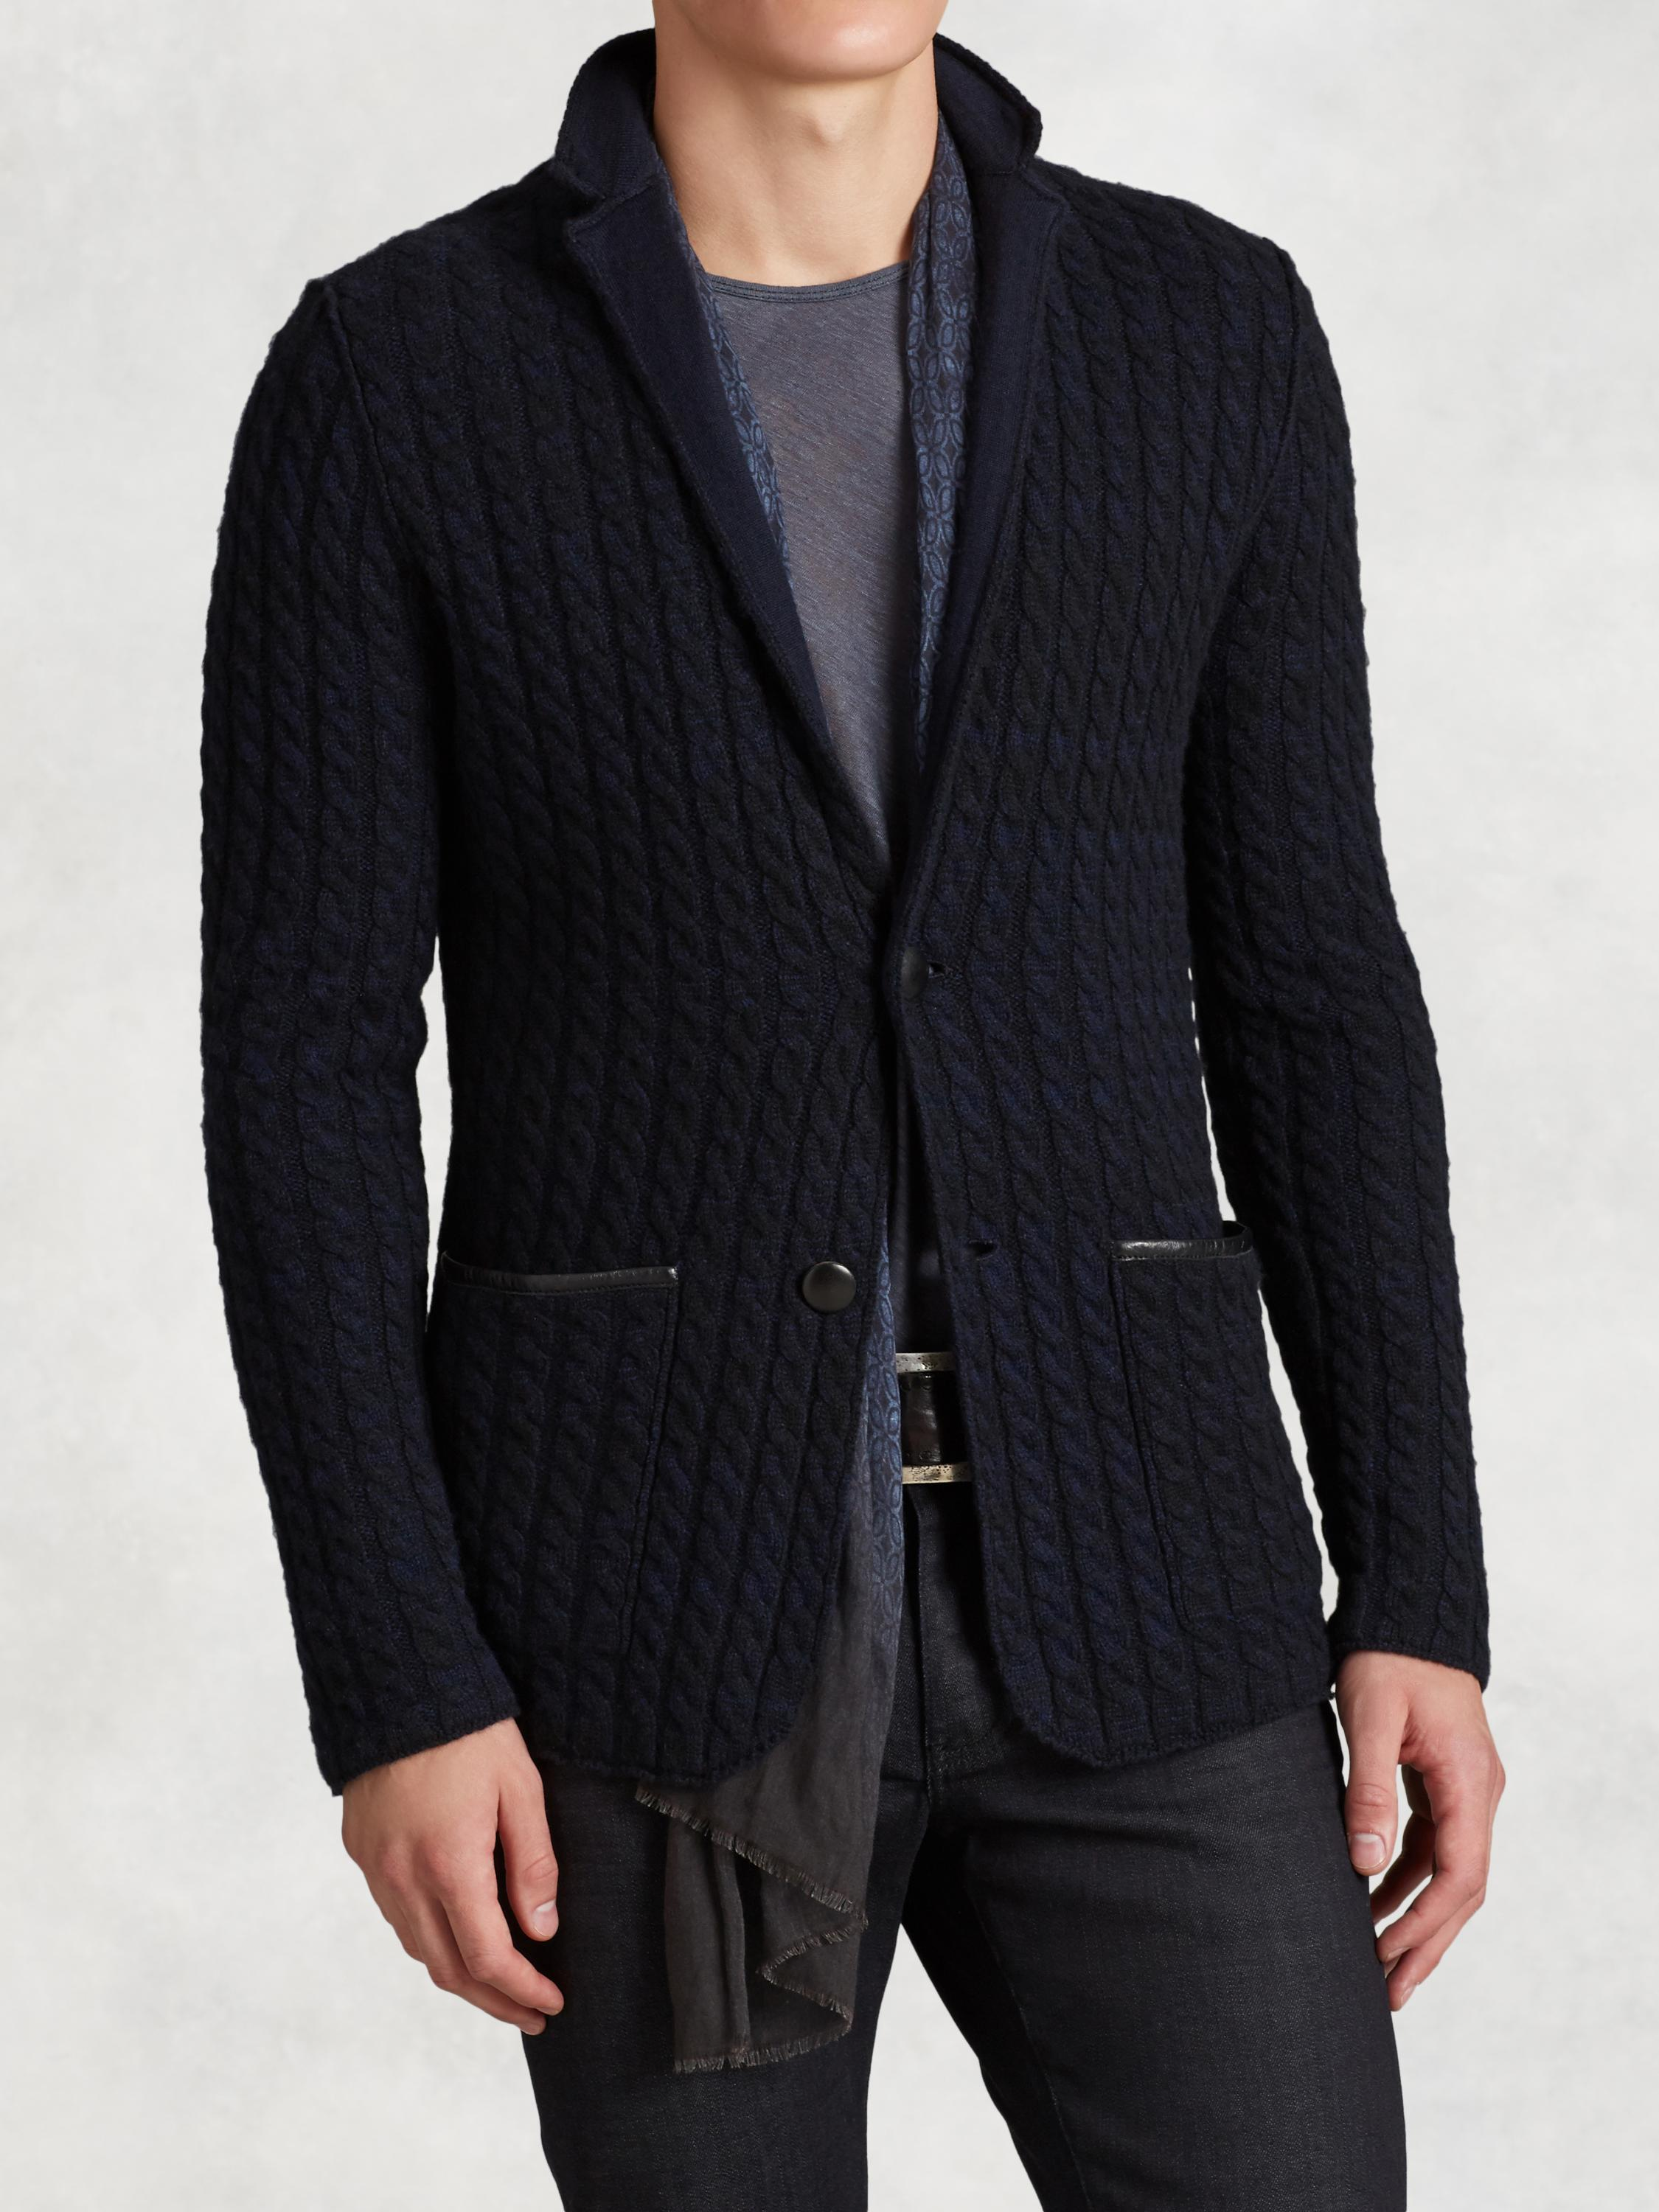 Plated Cashmere Sweater Jacket